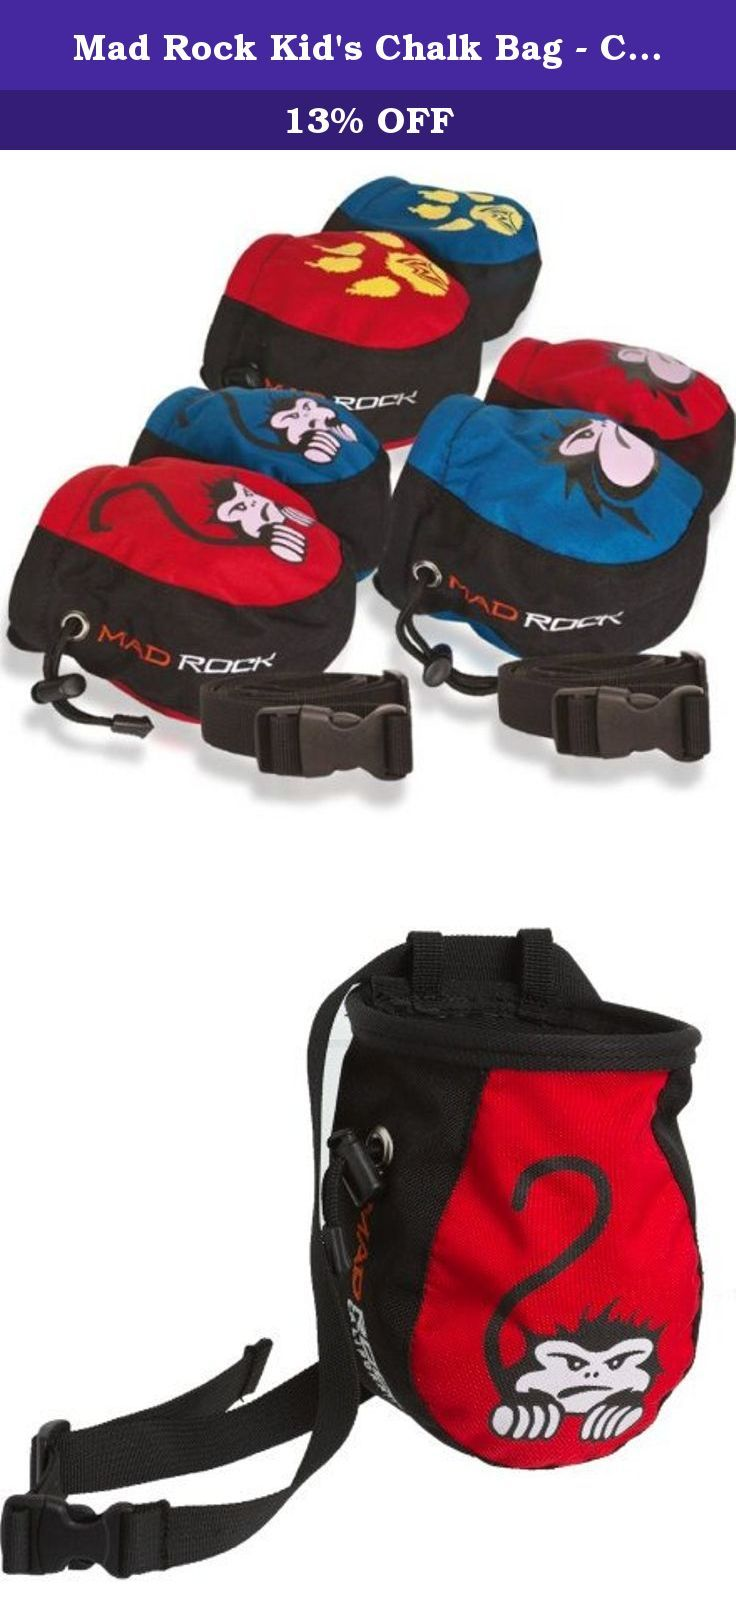 Mad Rock Kid's Chalk Bag - Crouching Monkey Red. Sized smaller than the Koala, the Kid's Chalk Bag is the perfect accessory for the little ones. Available in three different playful designs of Crouching Monkey, Paws, and Mad Face.